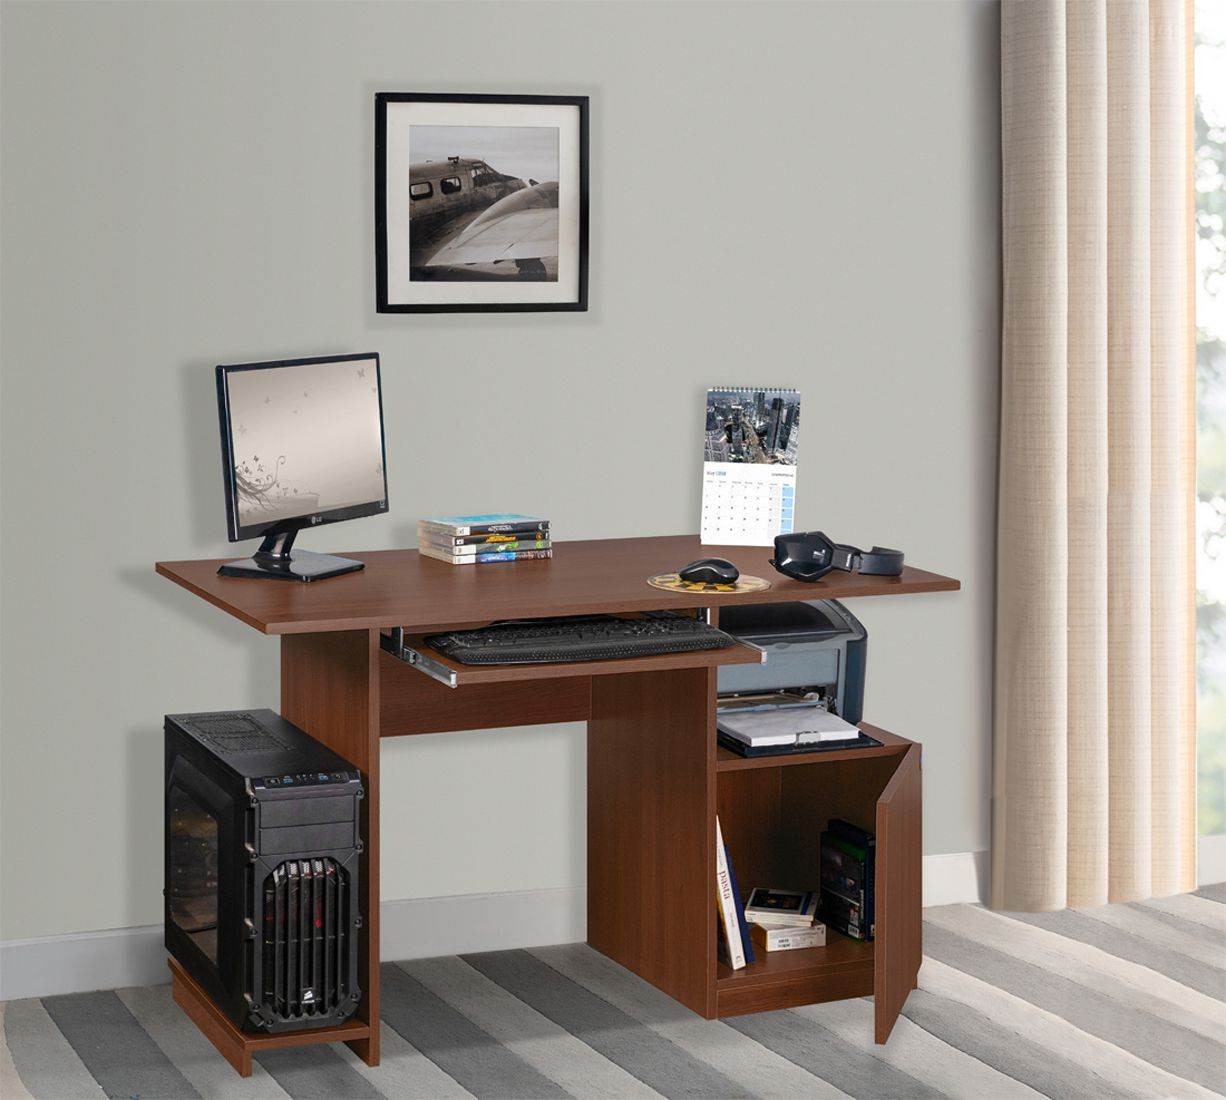 Wing Computer Table/Office Table  in Acacia Dark Colour by Delite kom